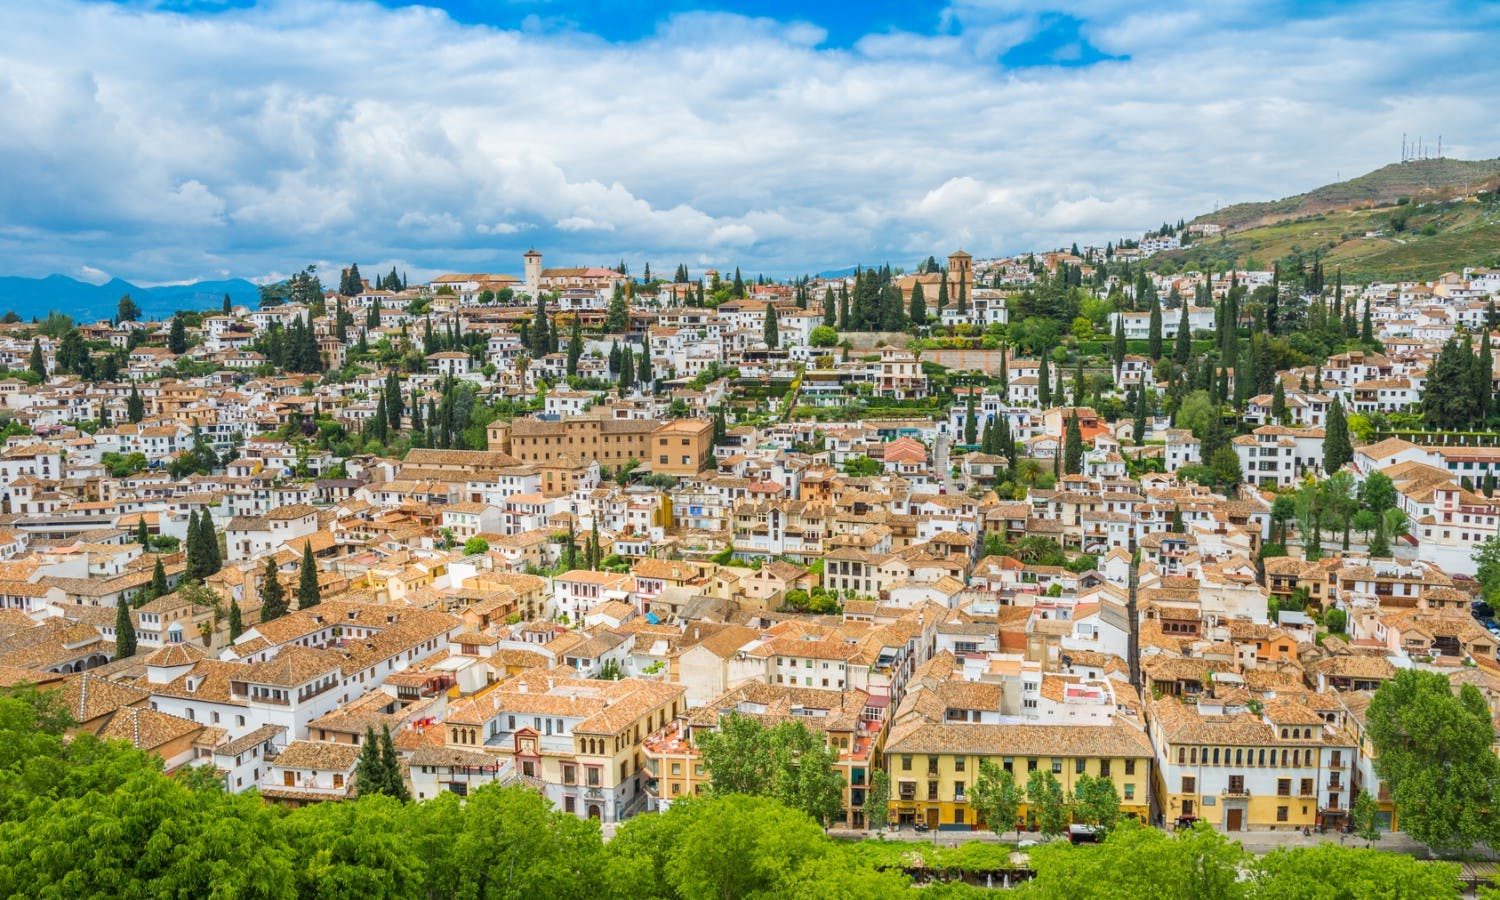 Guided historical tour of Granada: from the Muslims to the Christian era